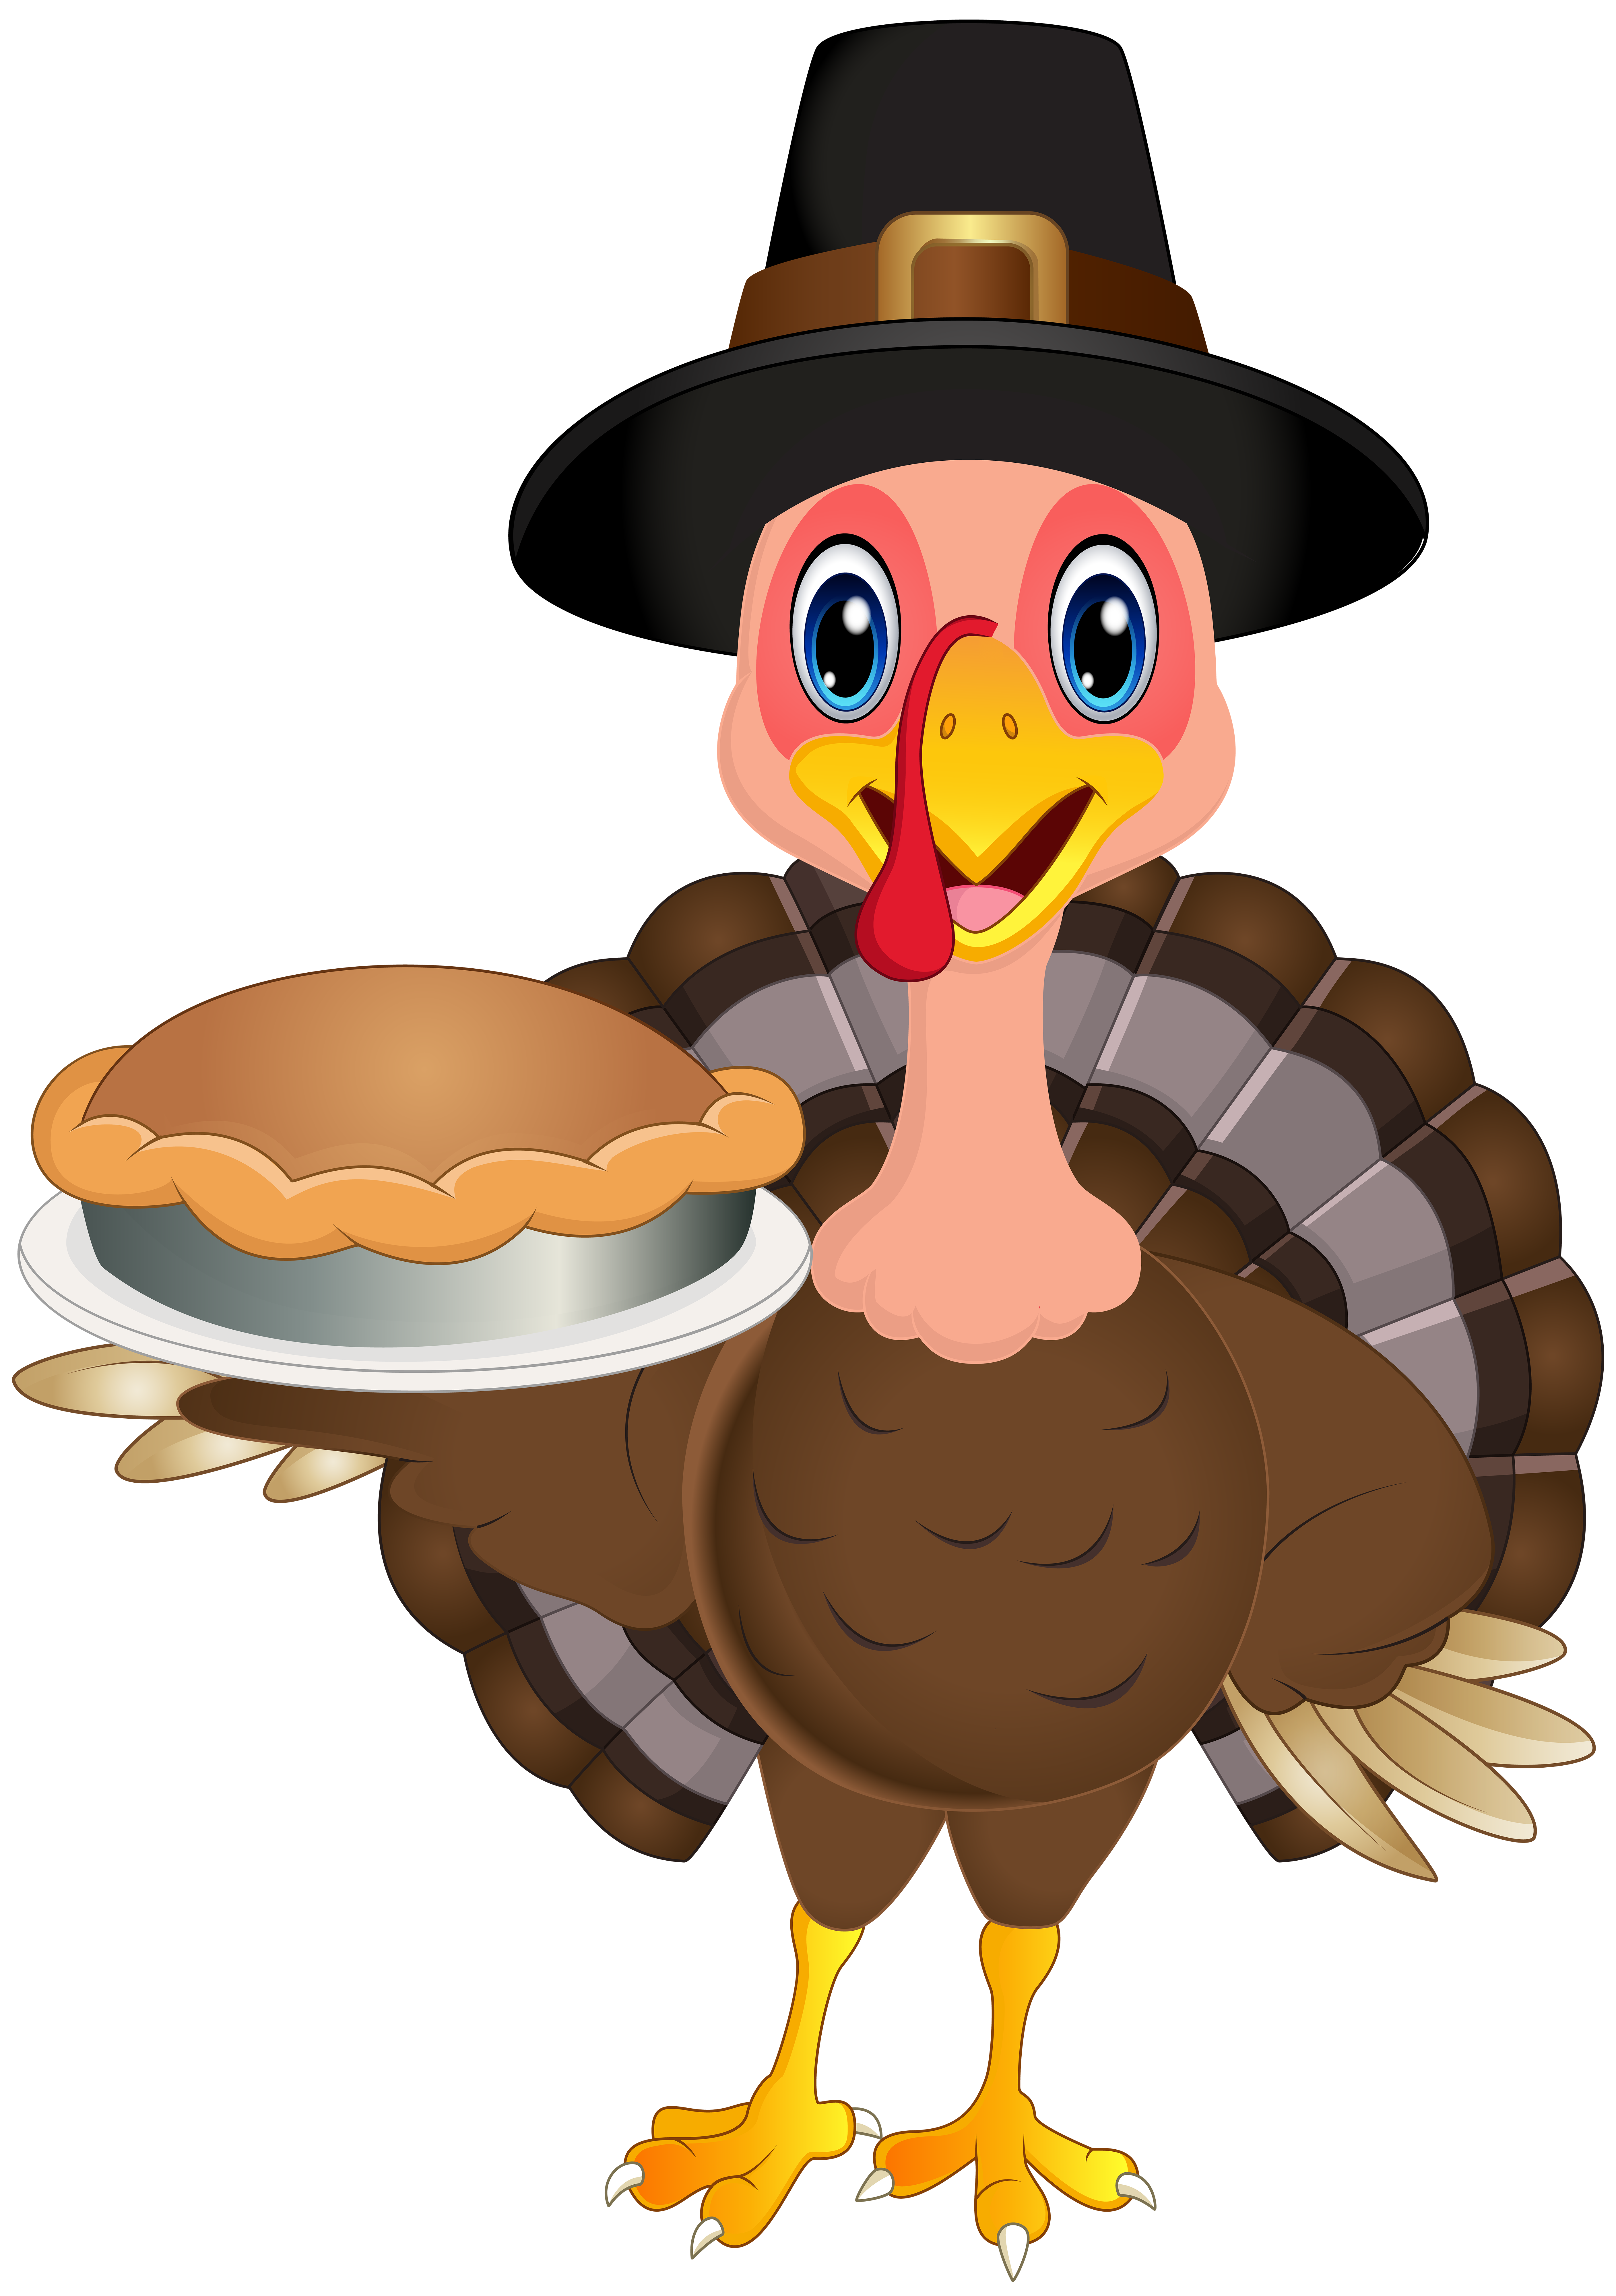 Thanksgiving Cute Turkey PNG Clip Art Image.